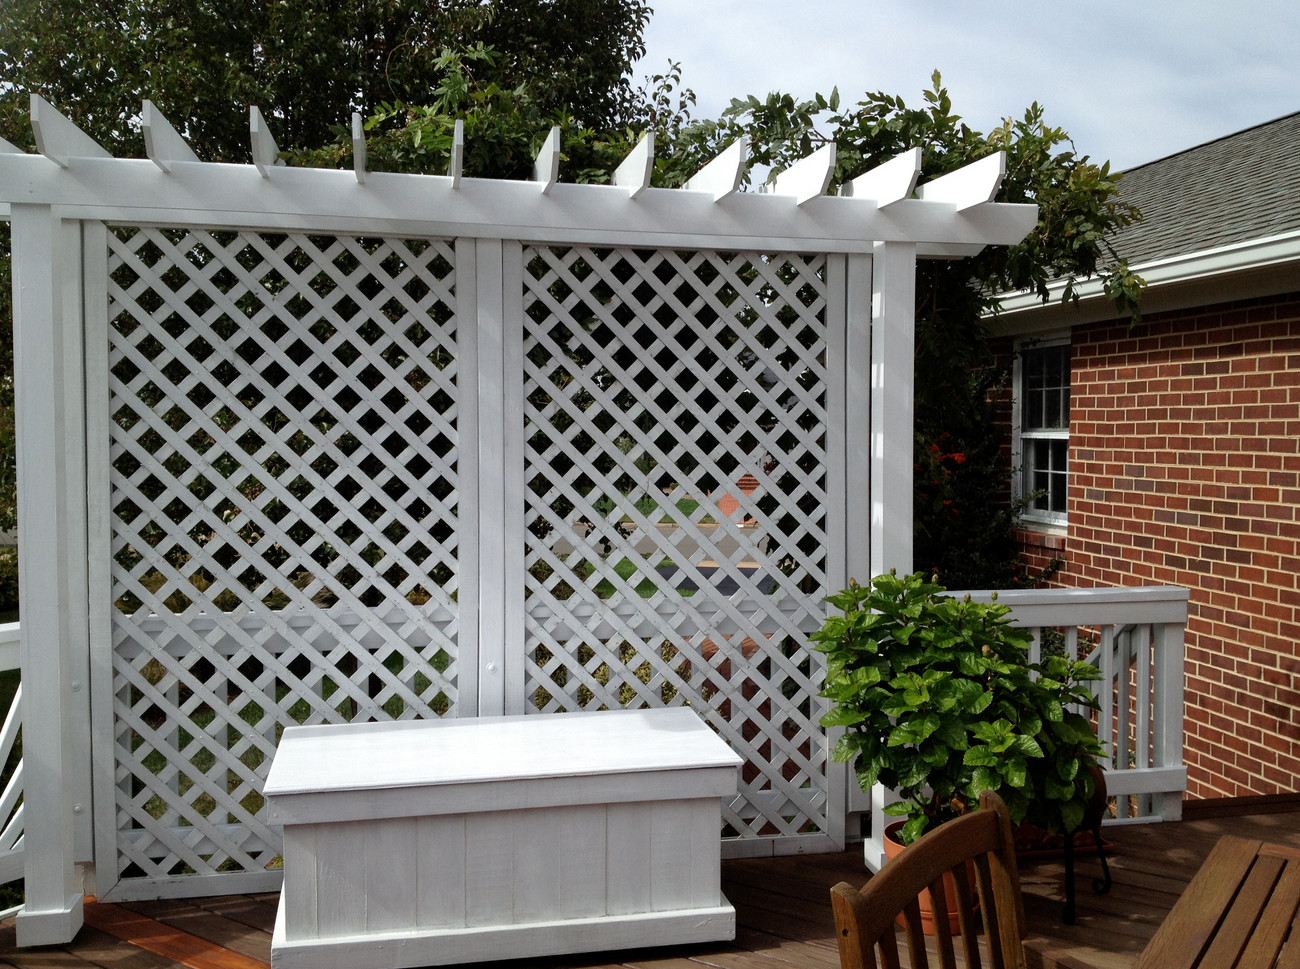 Lattice privacy screen for deck interesting ideas for home for Lattice yard privacy screen